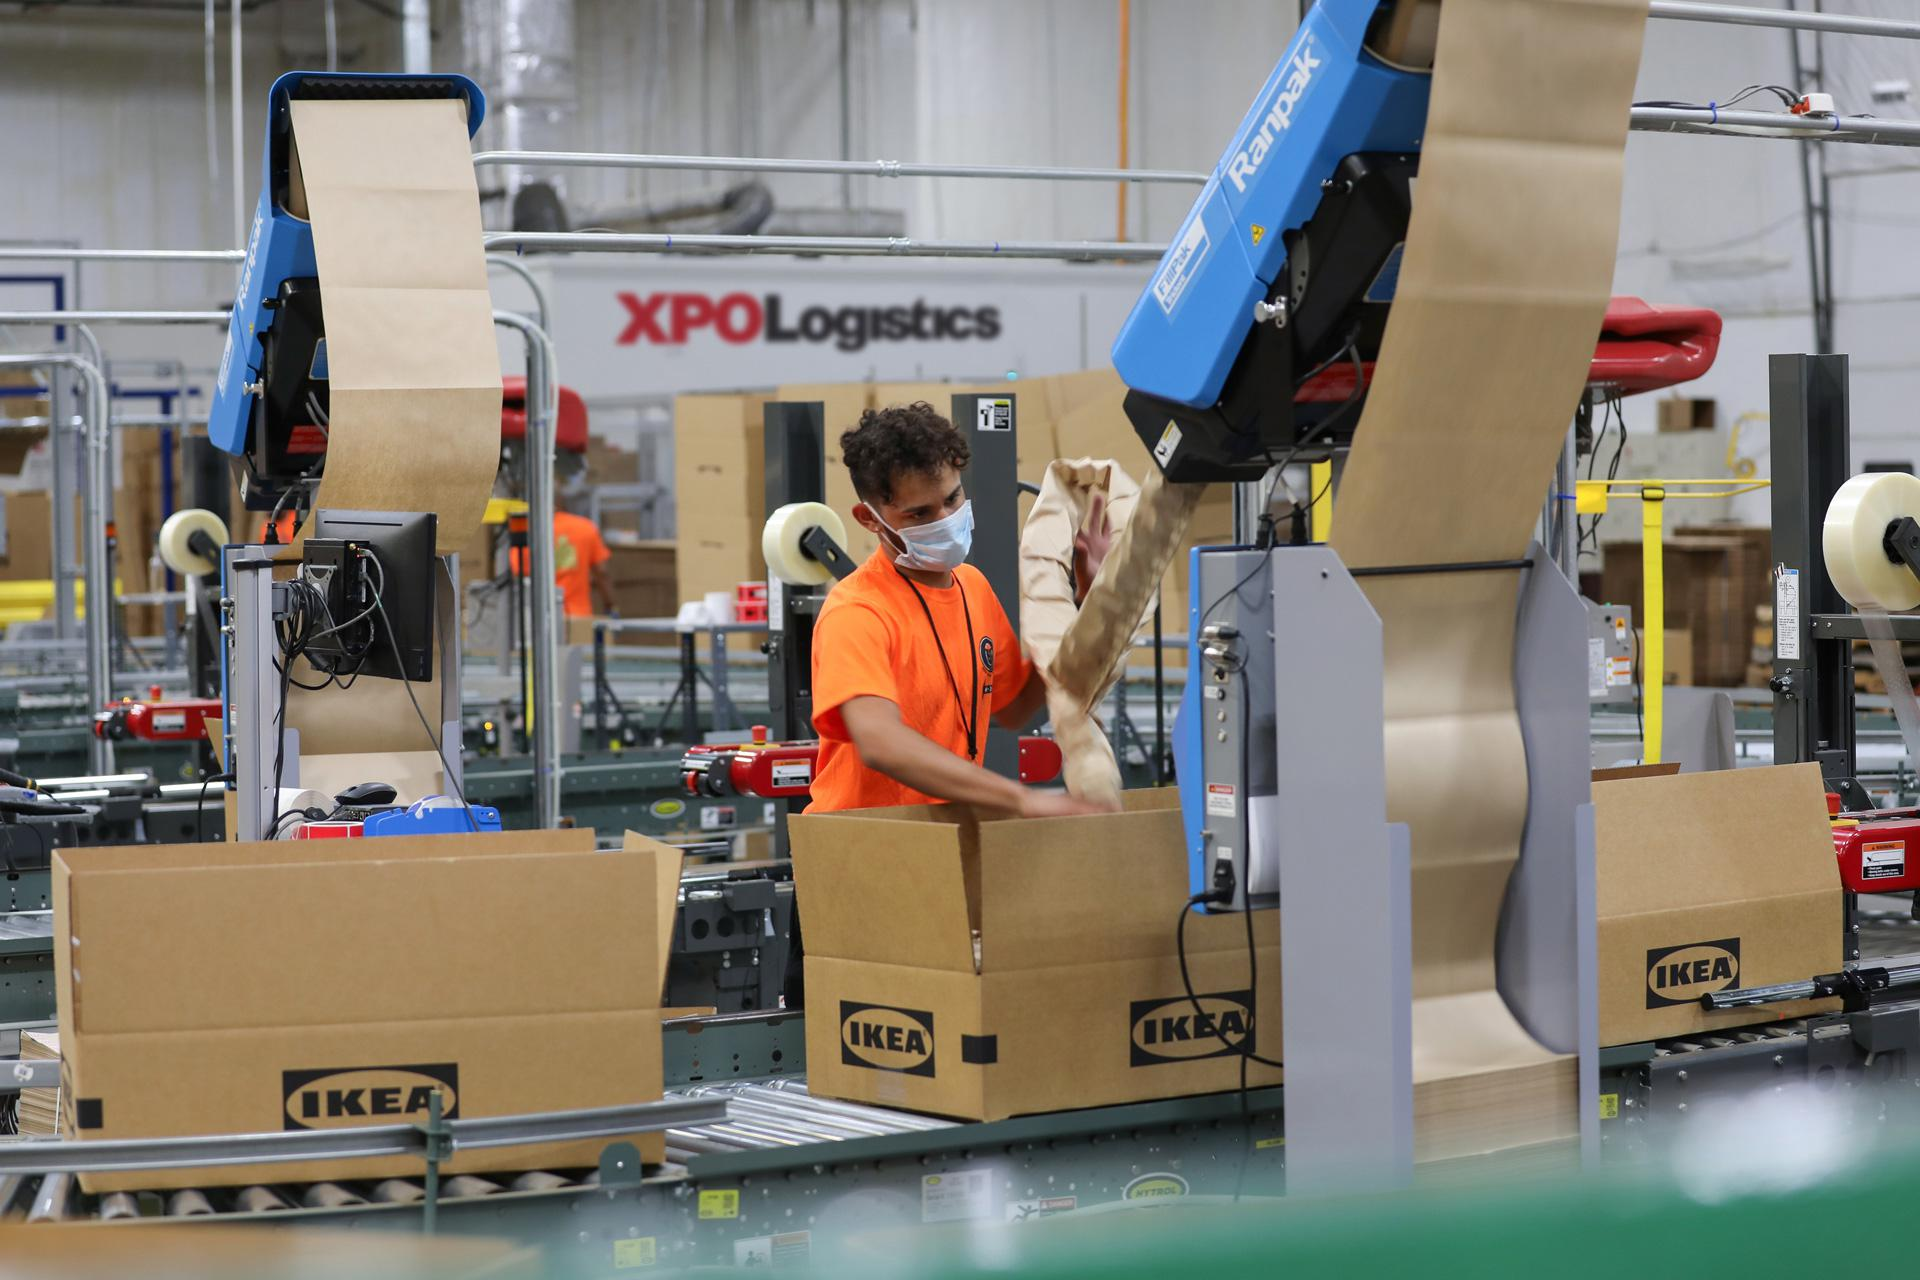 XPO employee works on IKEA packaging line.